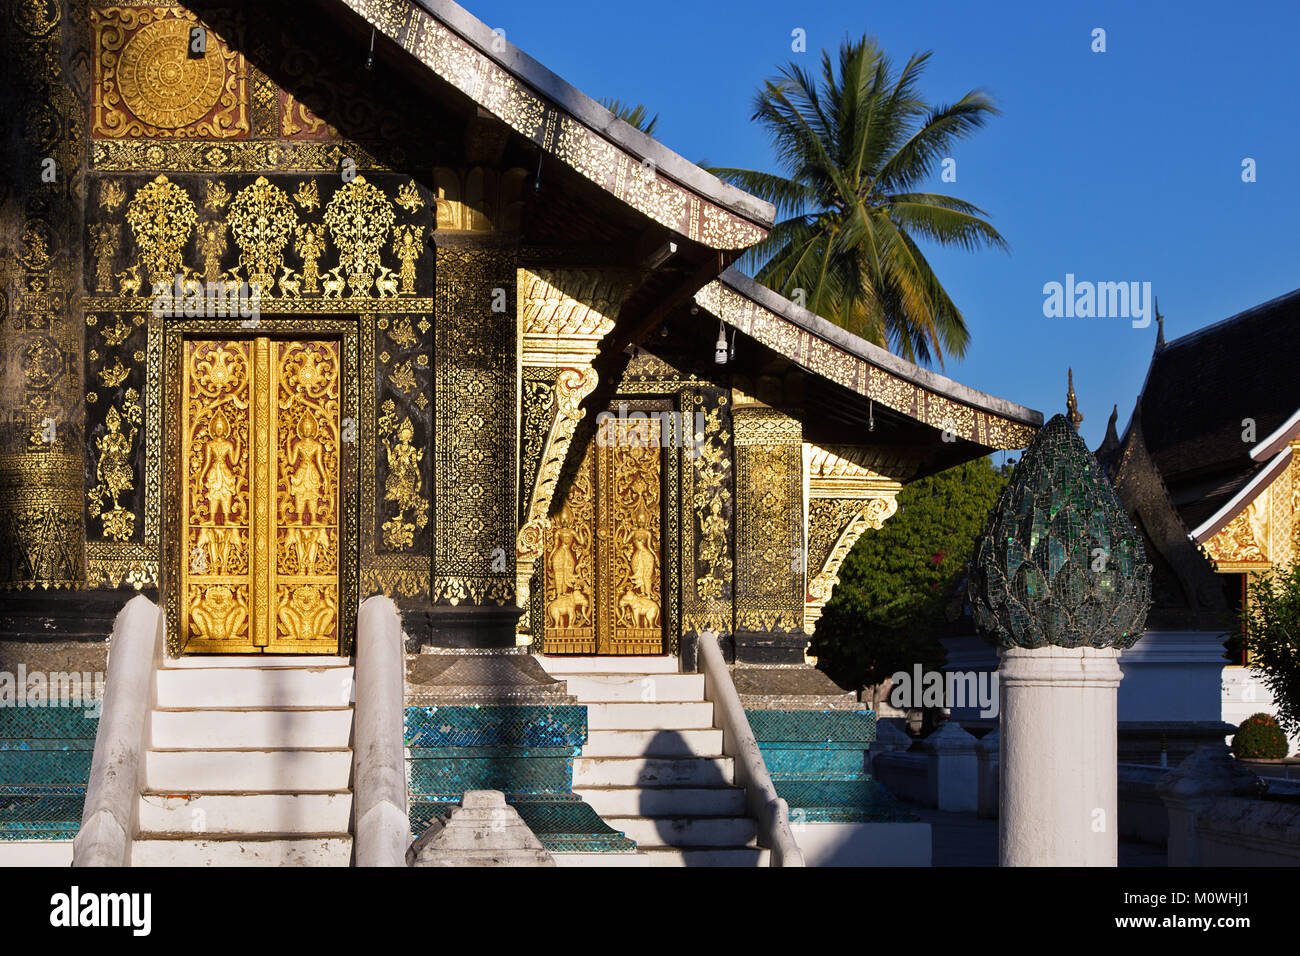 Wat Xieng Thong Temple in UNESCO World Heritage Town Luang Prabang, Northern Laos - Stock Image